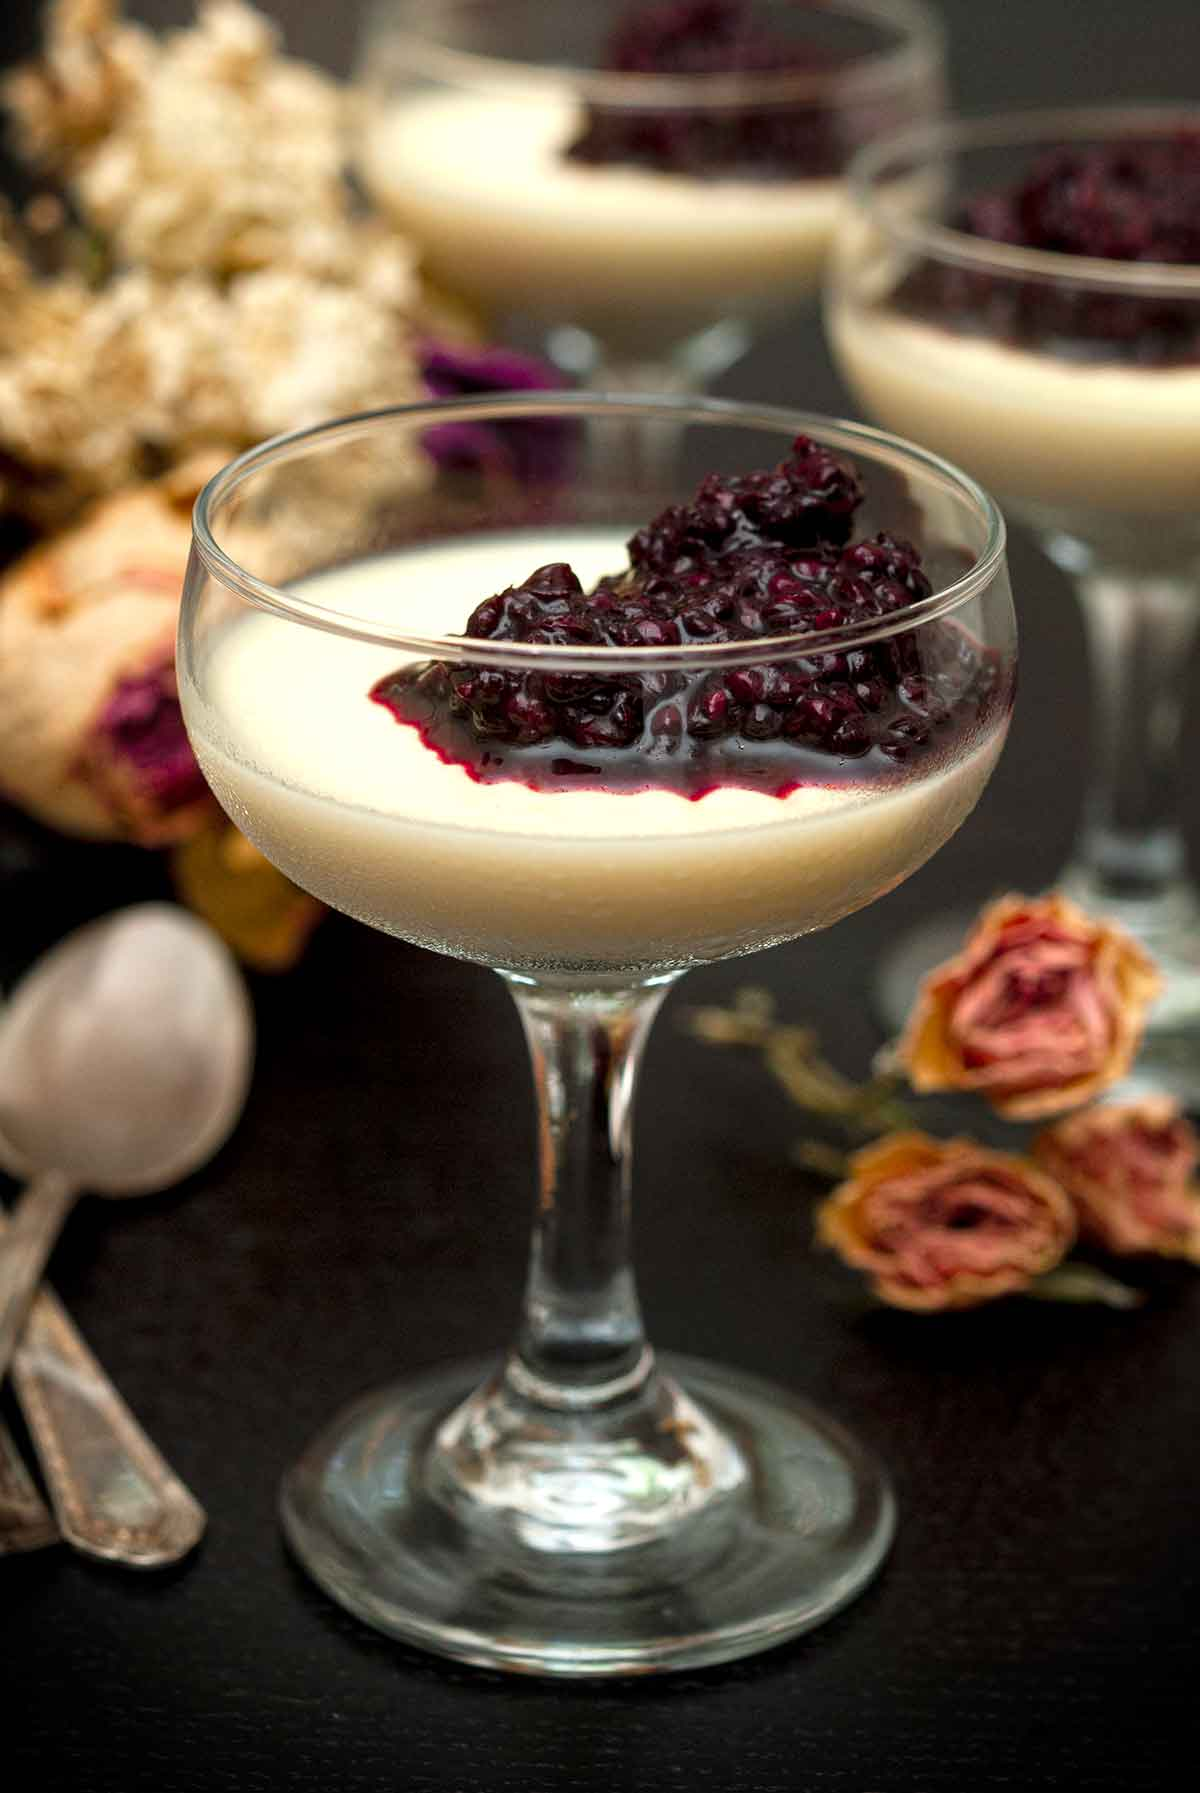 3 glasses of panna cotta with berry sauce on a table with flowers and spoons.